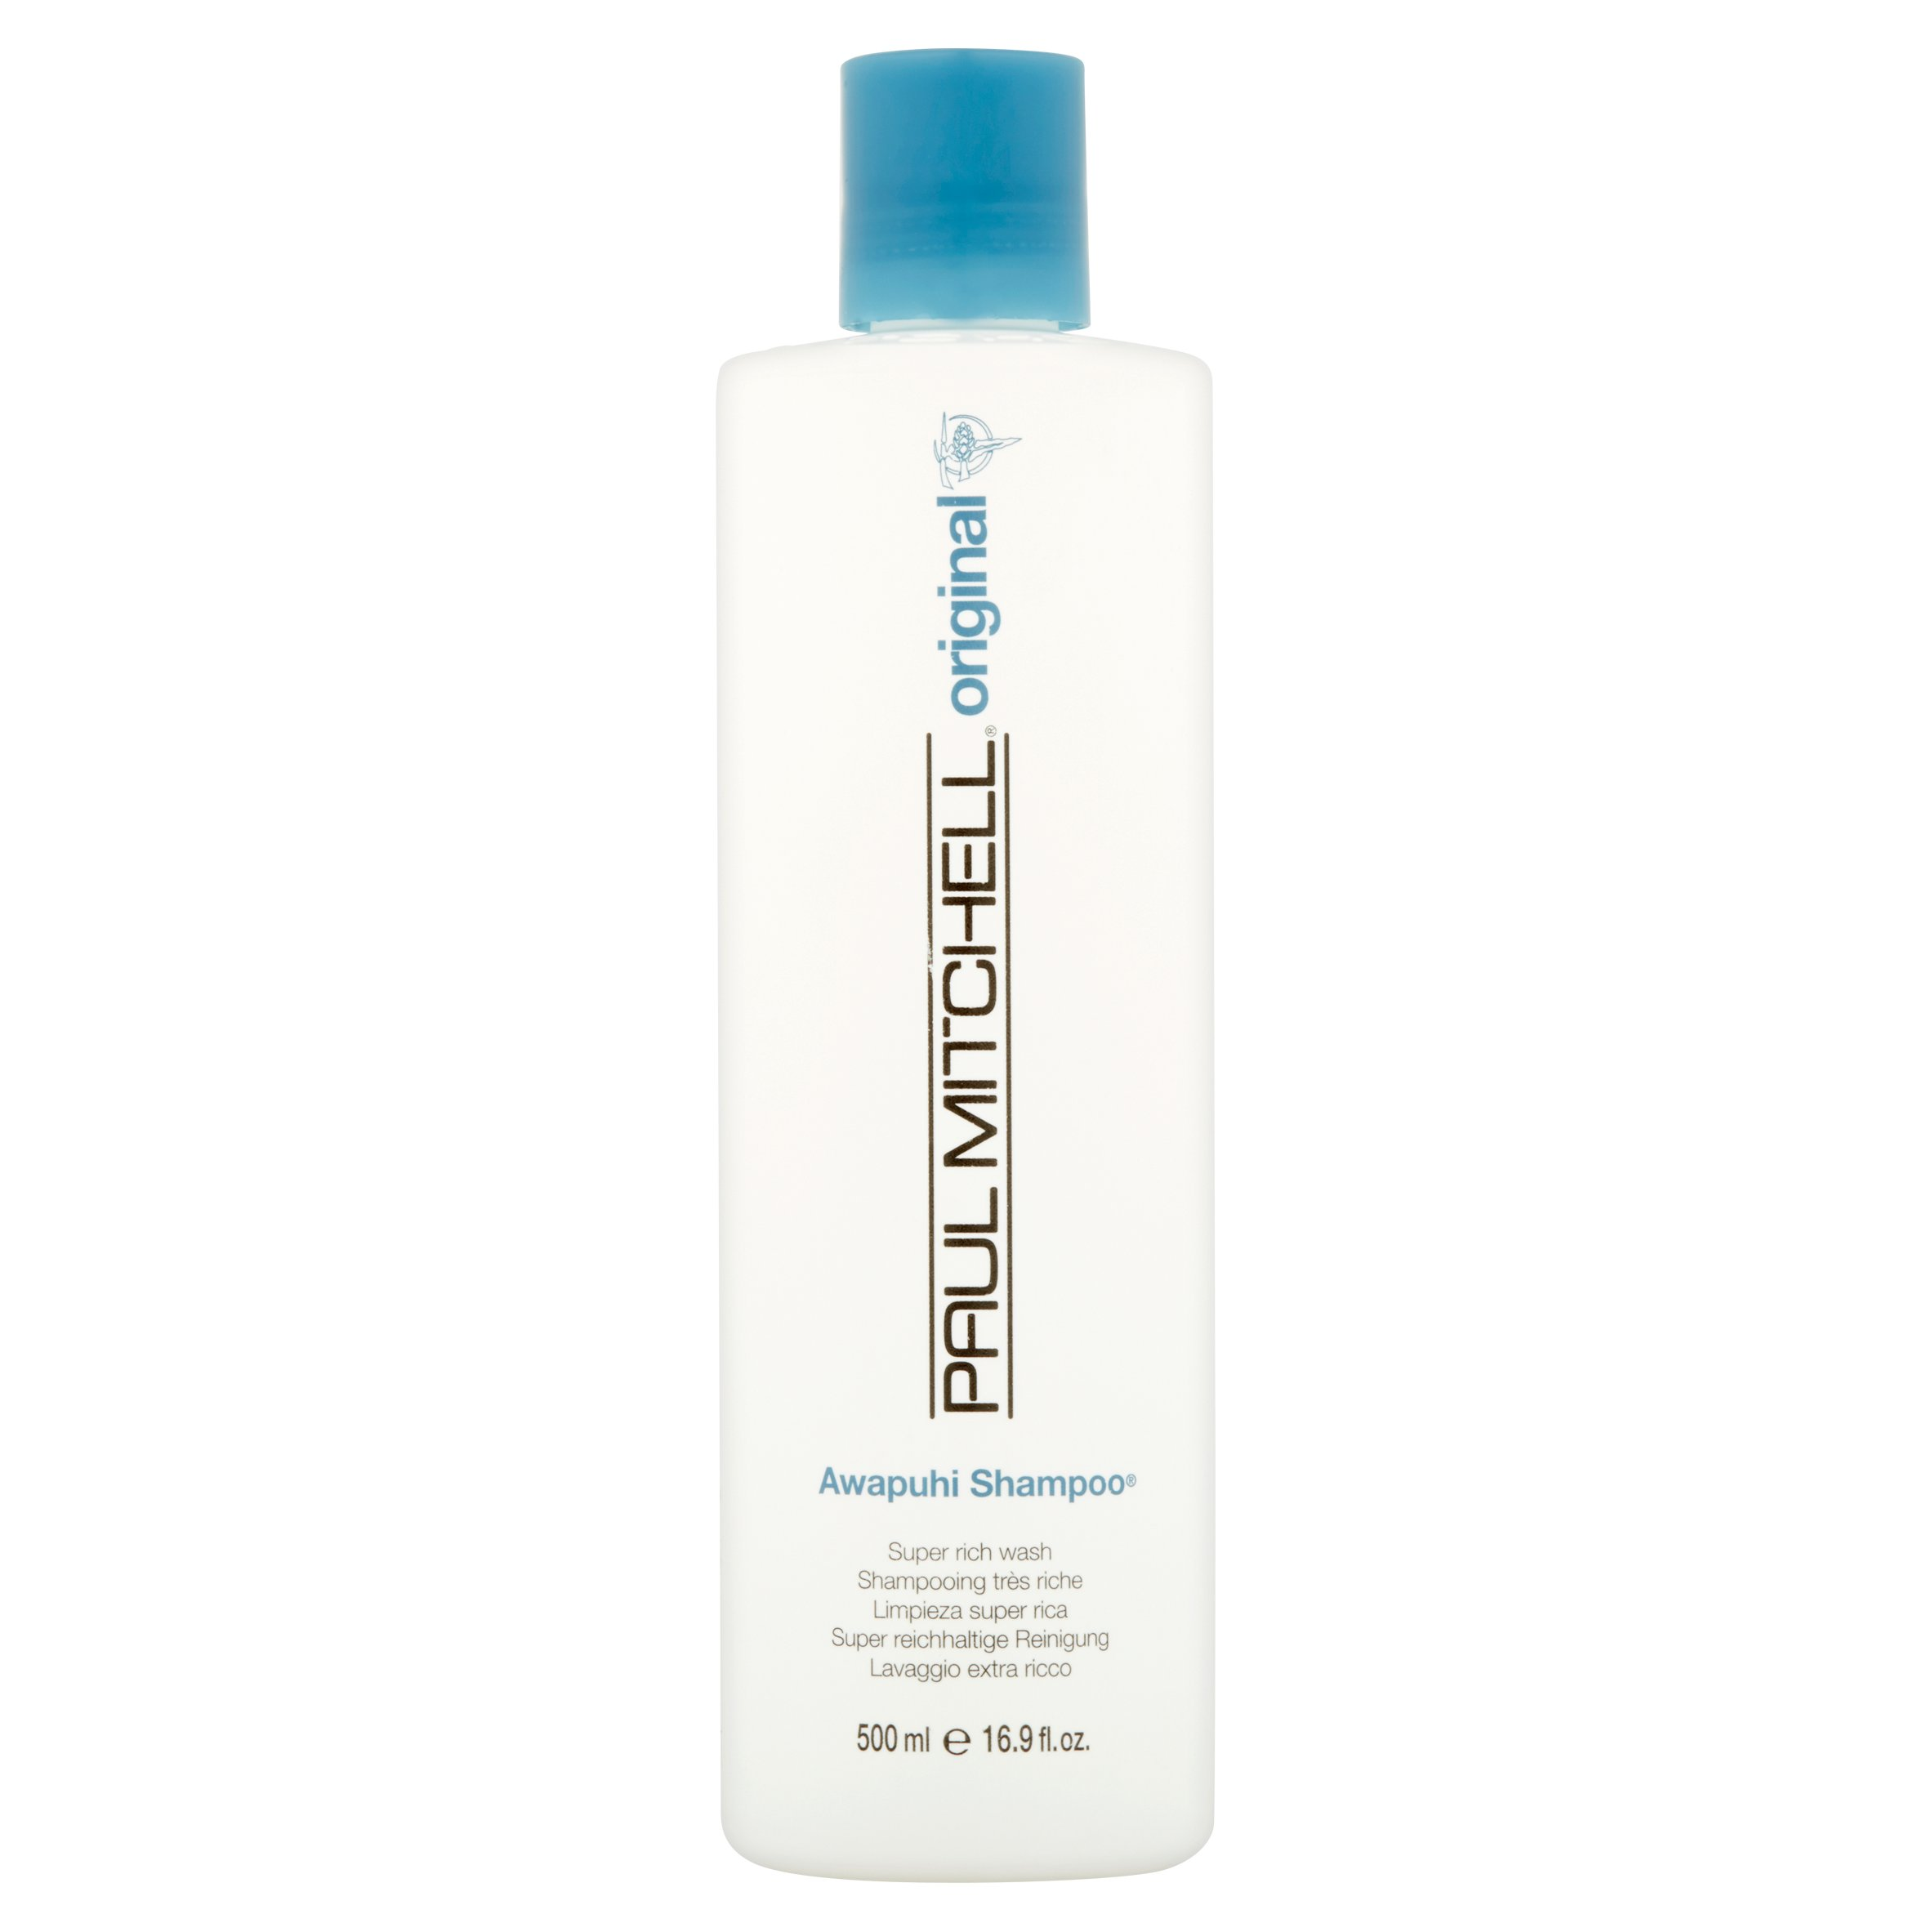 Paul Mitchell Original Awapuhi Shampoo, 16.9 Oz